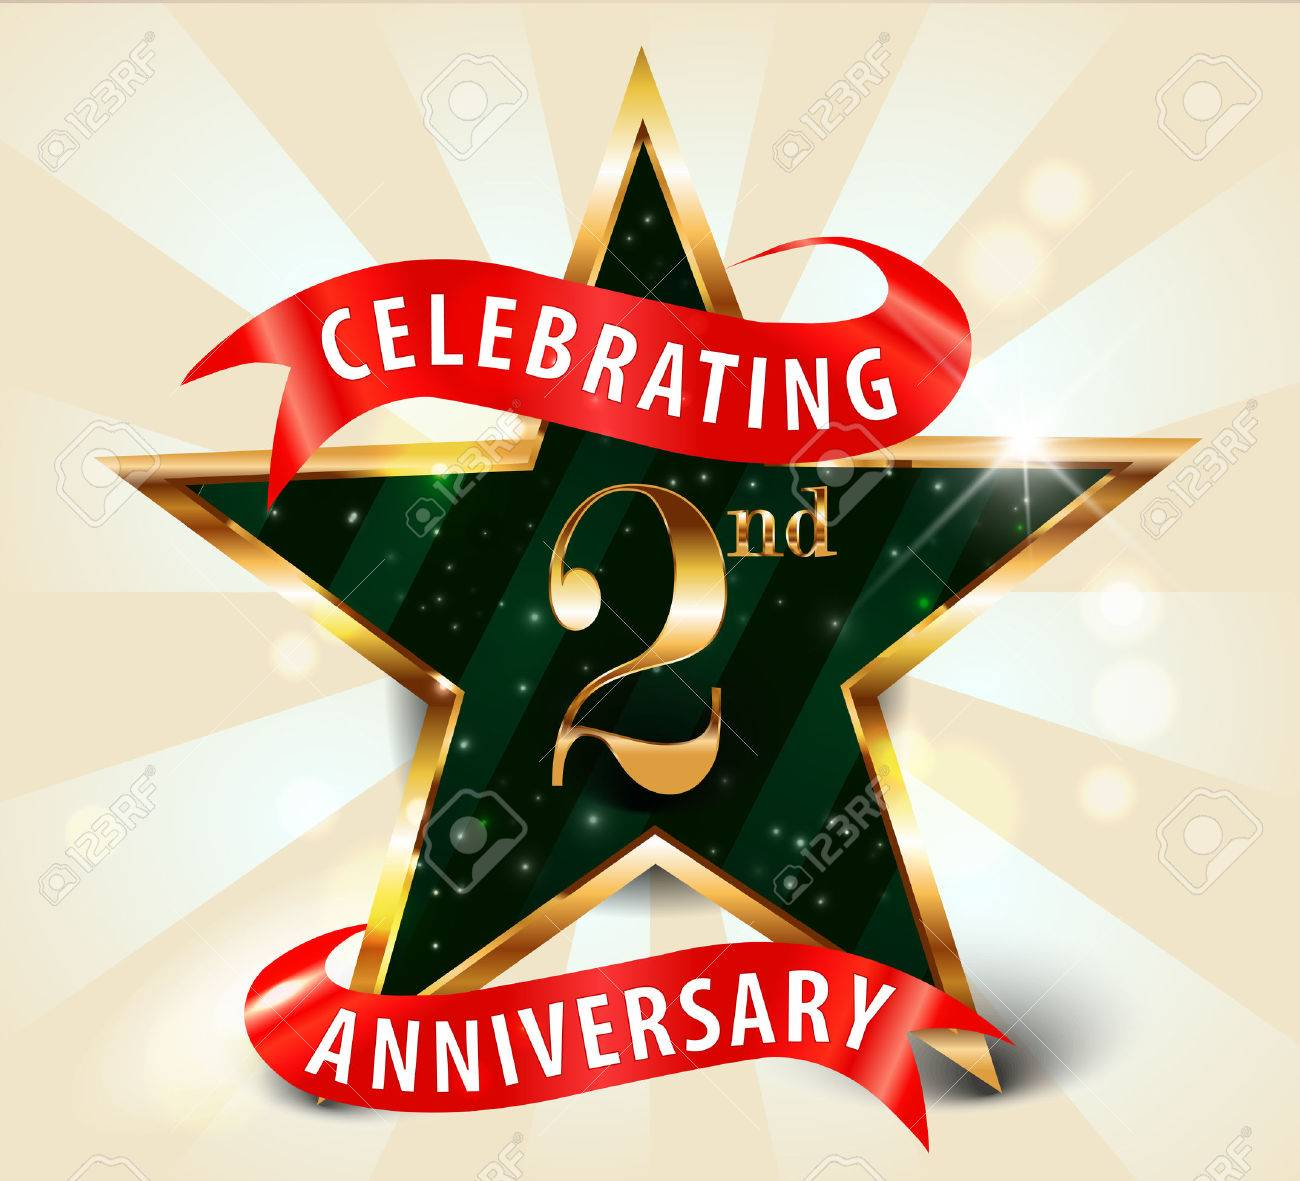 2 Year Anniversary Celebration Golden Star Ribbon Celebrating Royalty Free Cliparts Vectors And Stock Illustration Image 37742585